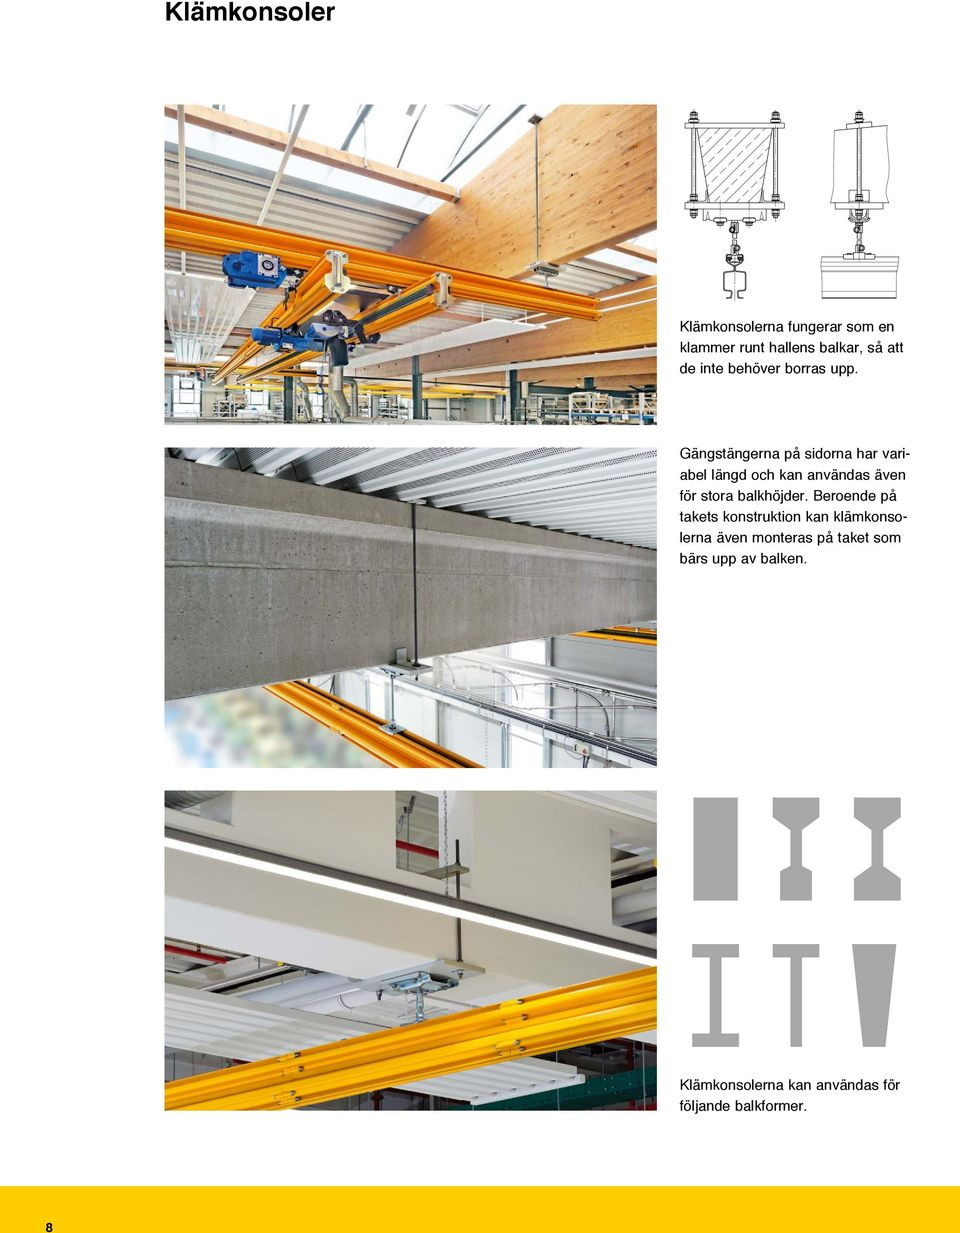 Deckenanschluss HB Anschluss an Beton- oder Holzbinder Umklammerungskonsole HB160/200/250 Aufhängelast / Suspension load FA 16kN HB Ceiling Connection Mounting on concrete or wooden beams Embracing